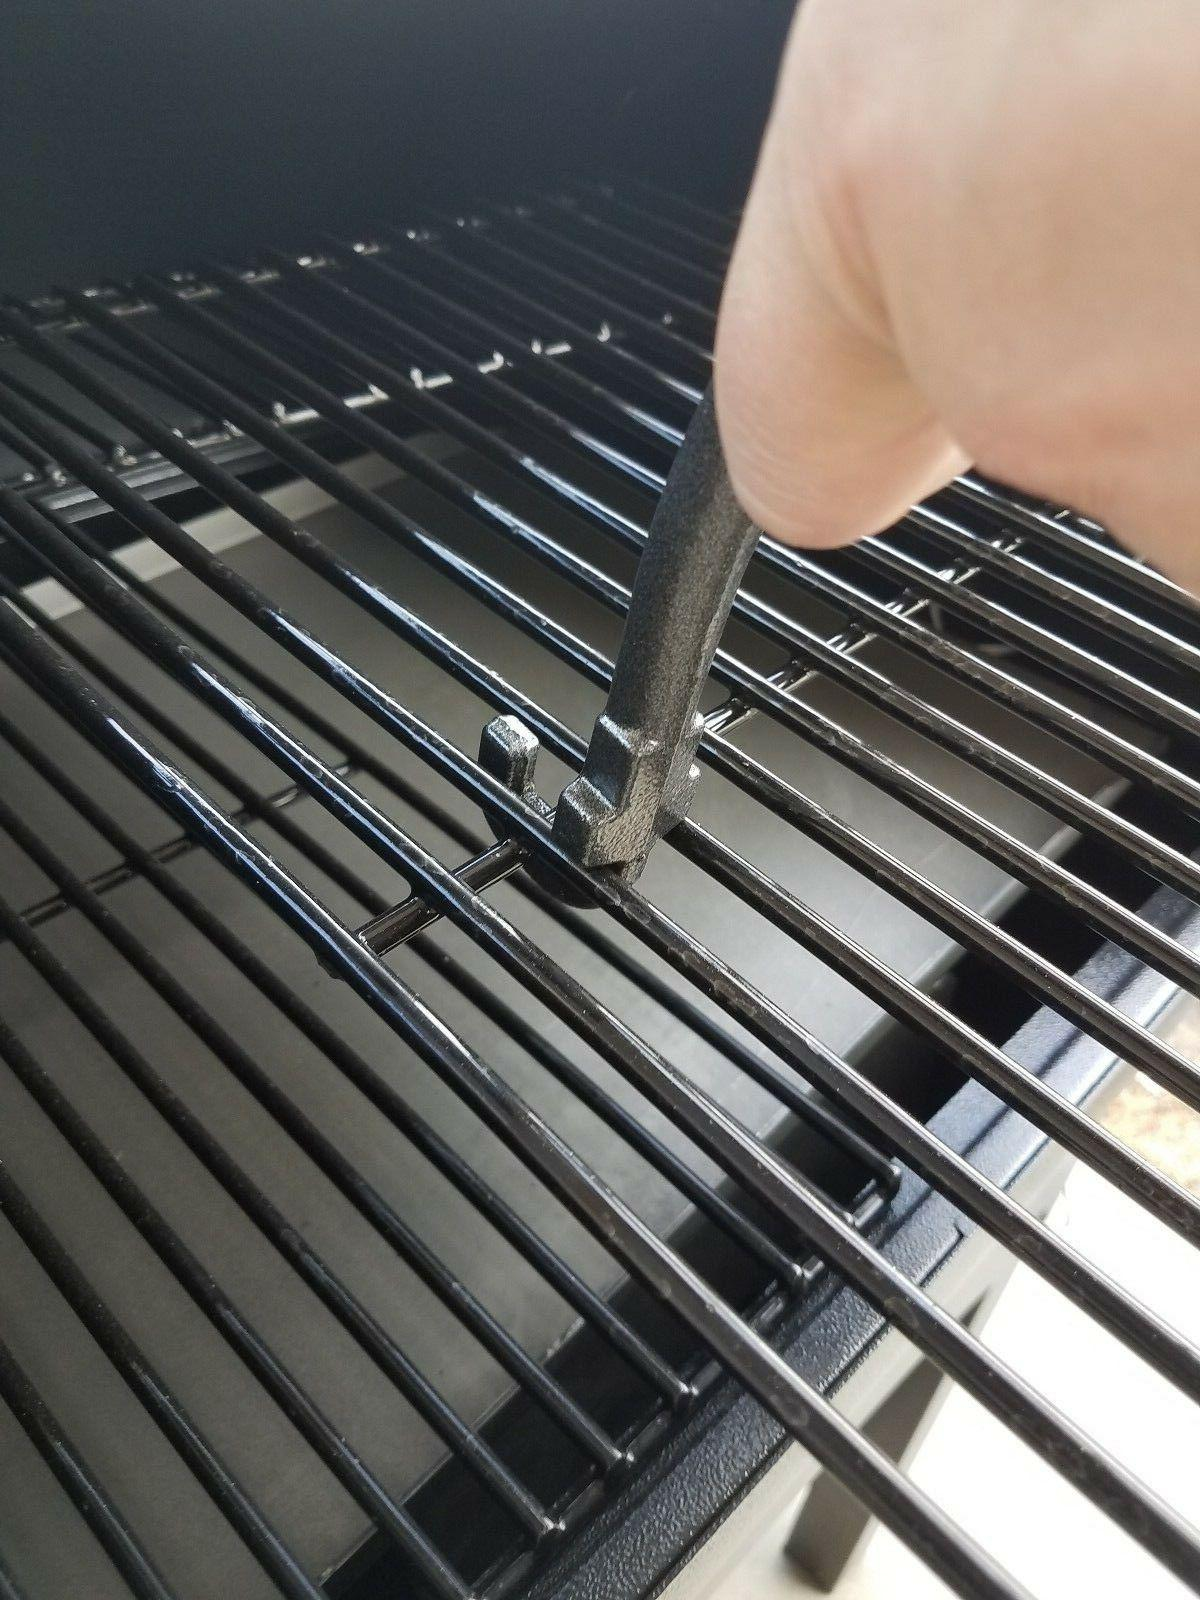 2 GRILL GRATE LIFTERS- TRAEGER